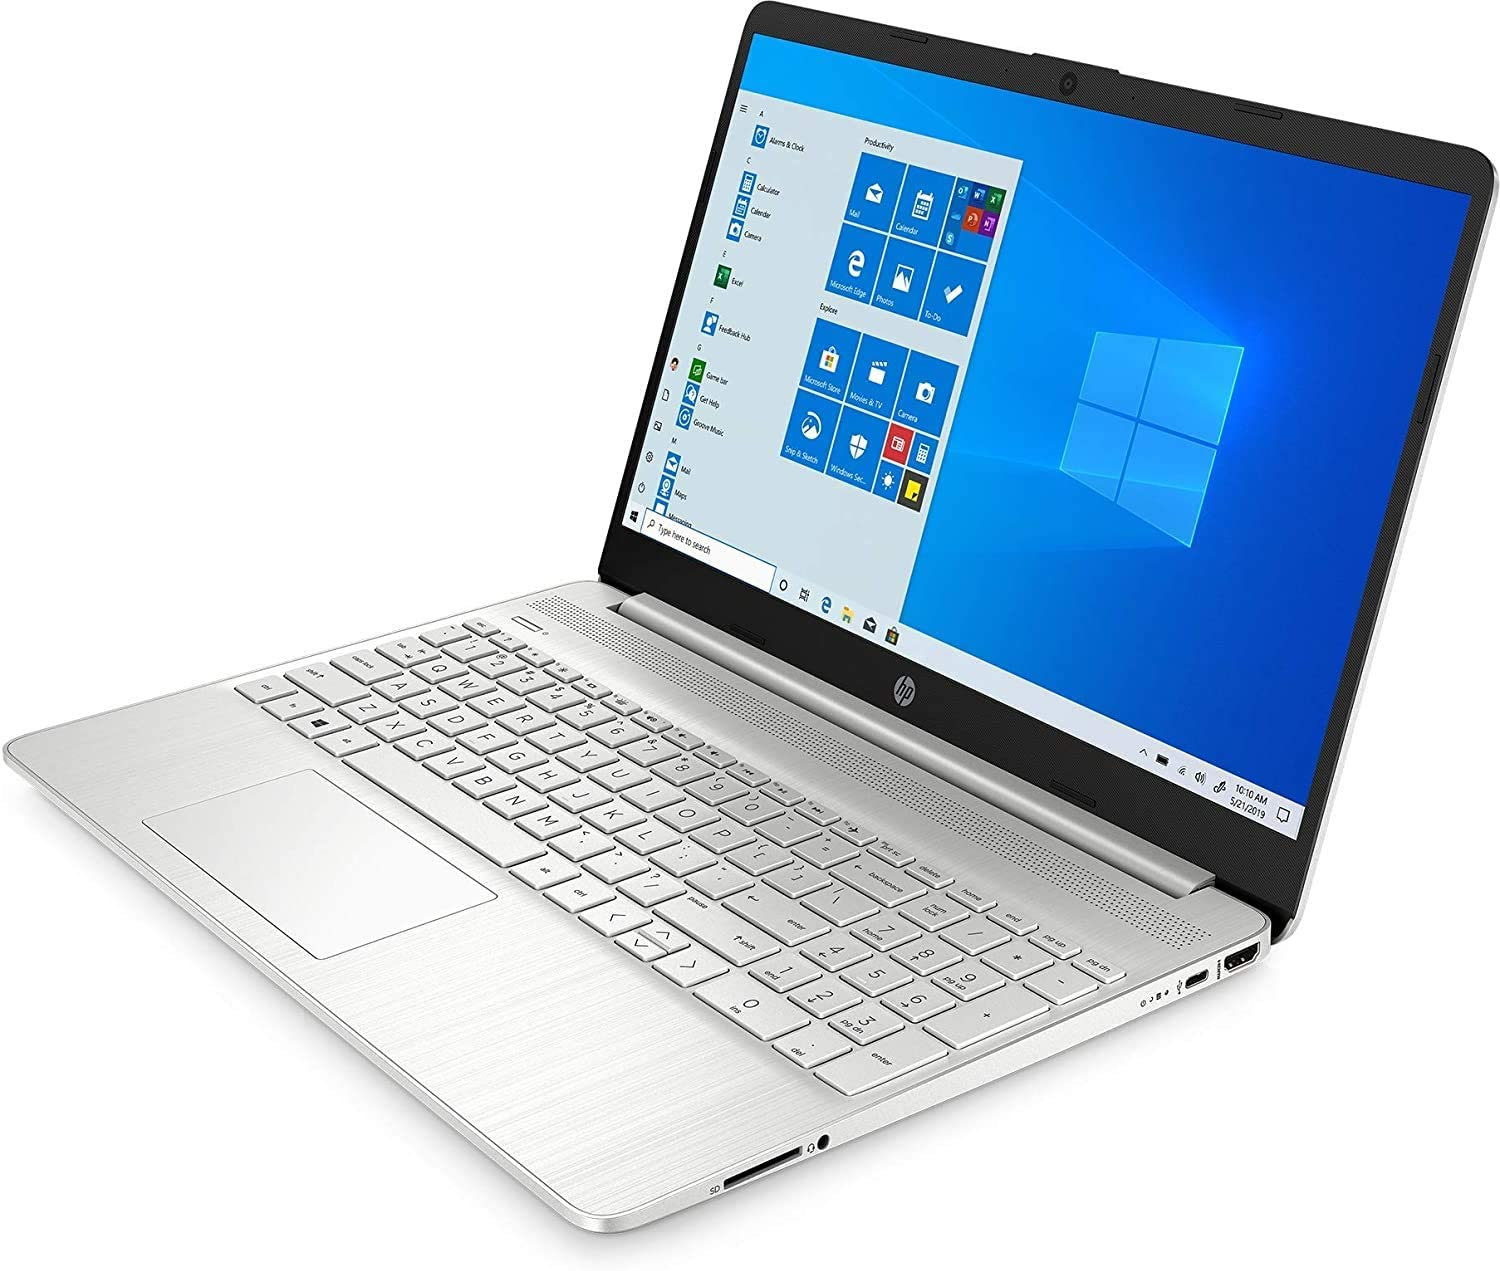 HP 15.6-inch FHD Touchscreen Laptop 256GB SSD 1.3GHz i7 12GB RAM (i7-1065G7 up to 3.9GHz, USB-C, HDMI, Windows 10 Home) Natural Silver 15-dy1079ms